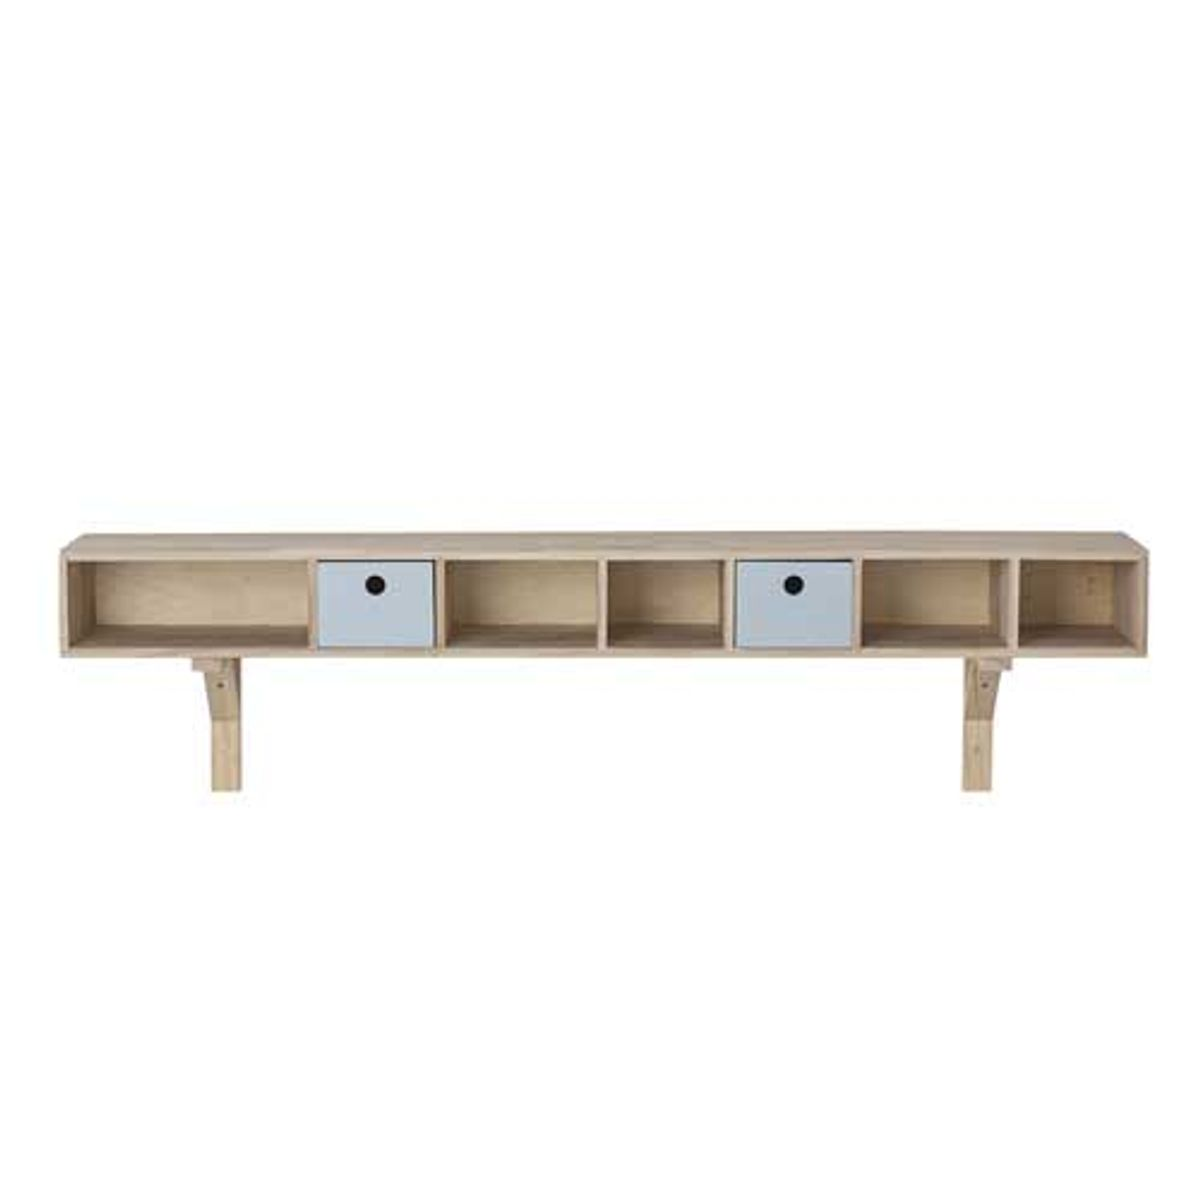 Etagère en bois blond 5 niches 2 tiroirs Bloomingville